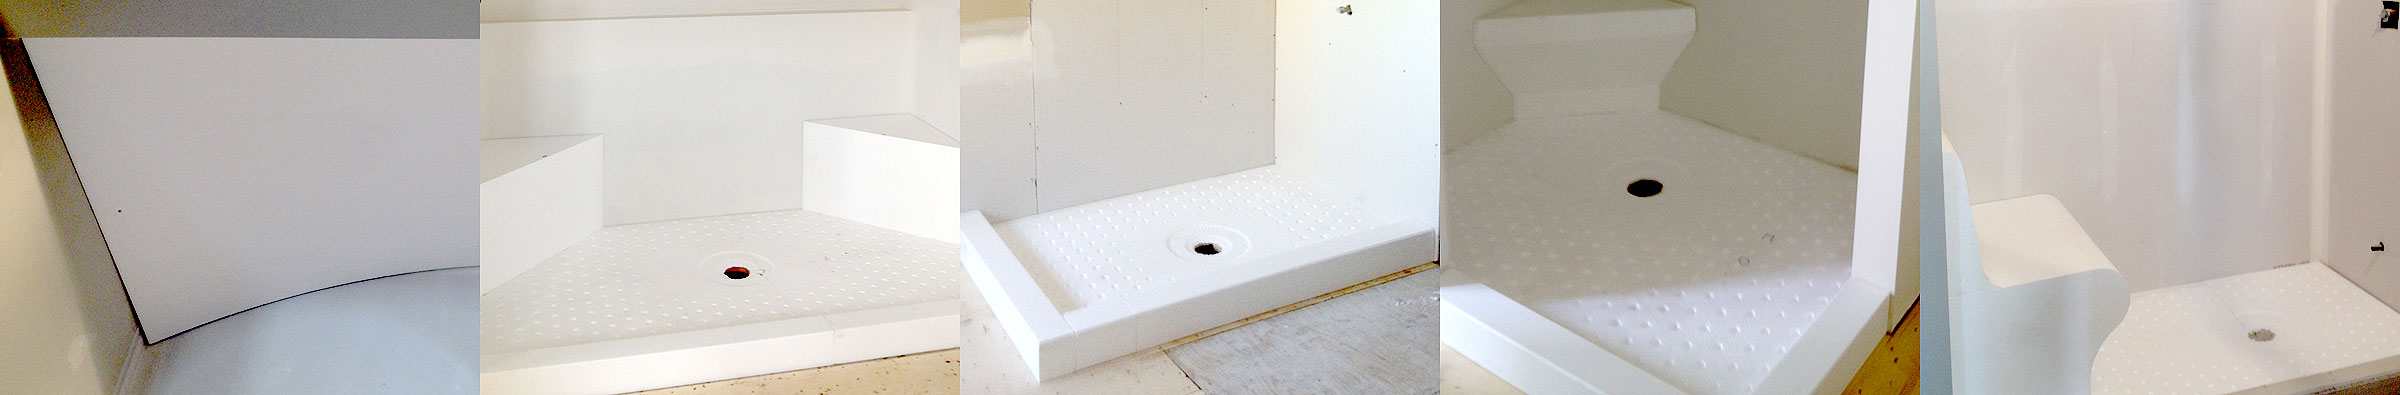 The Waterproofing Company - Custom Shower Pans and Shower Waterproofing